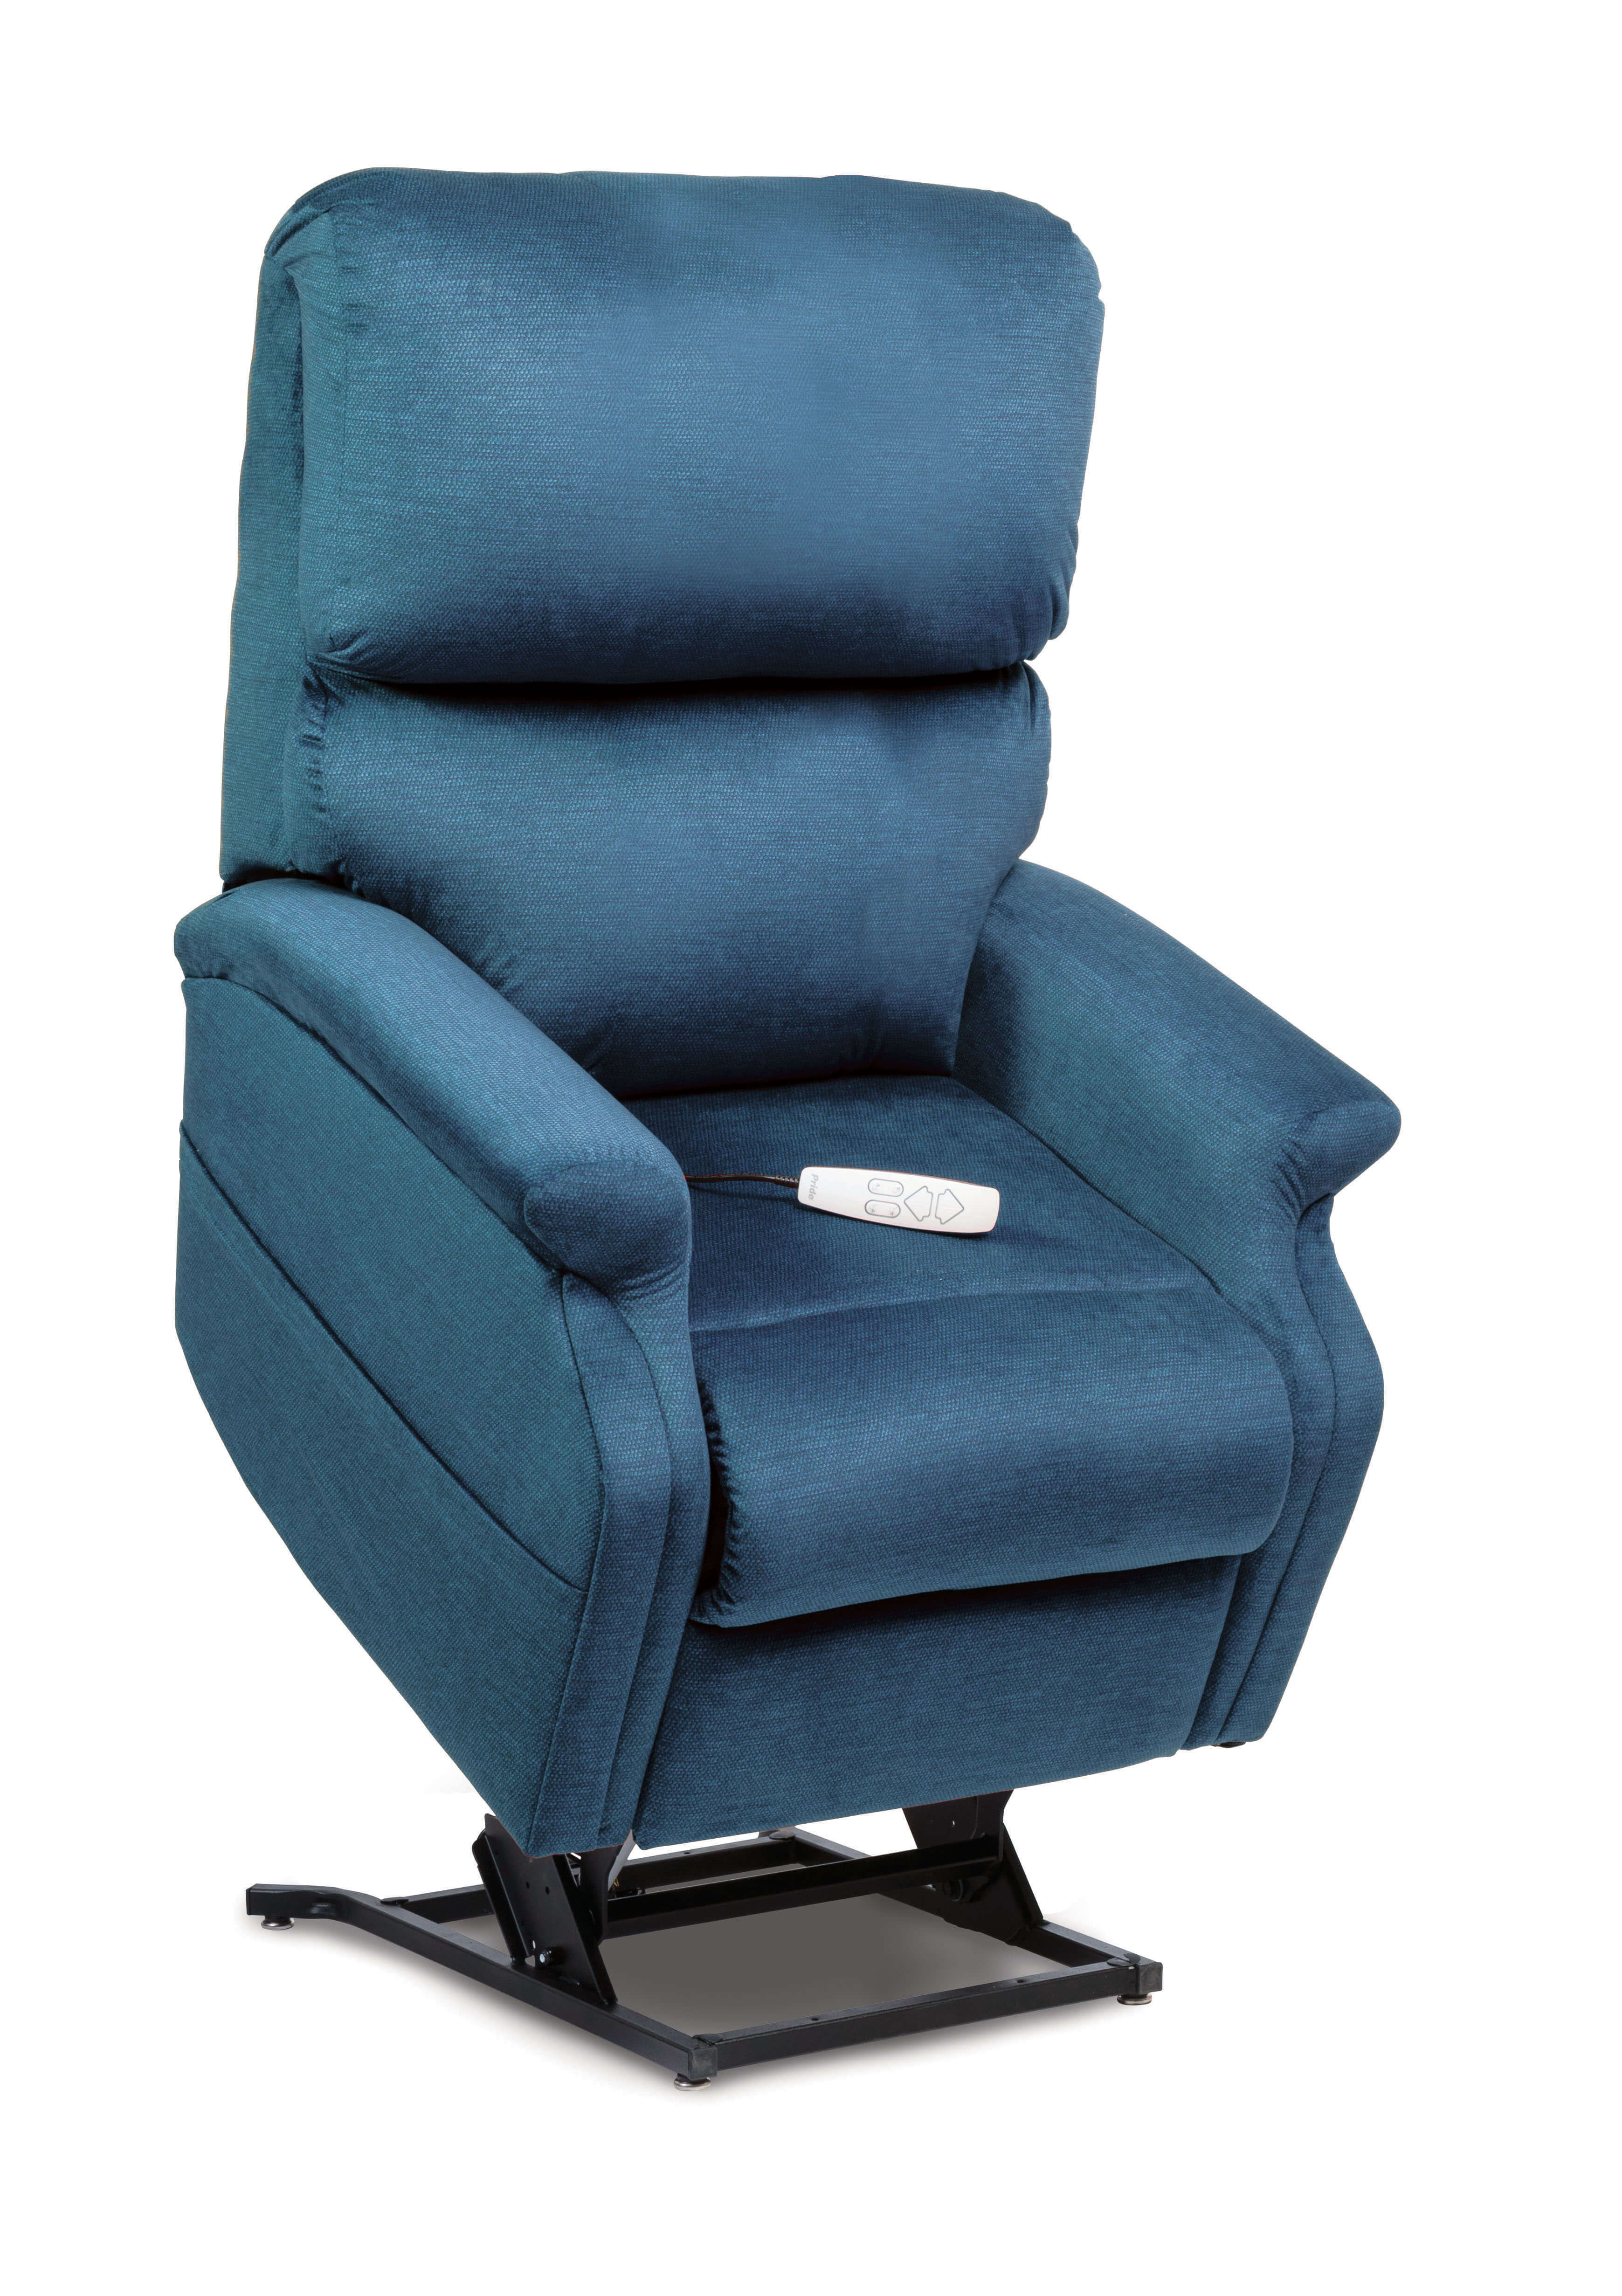 infinite position recliner power lift chair chestnut leather pride infinity collection lc 525im recliners